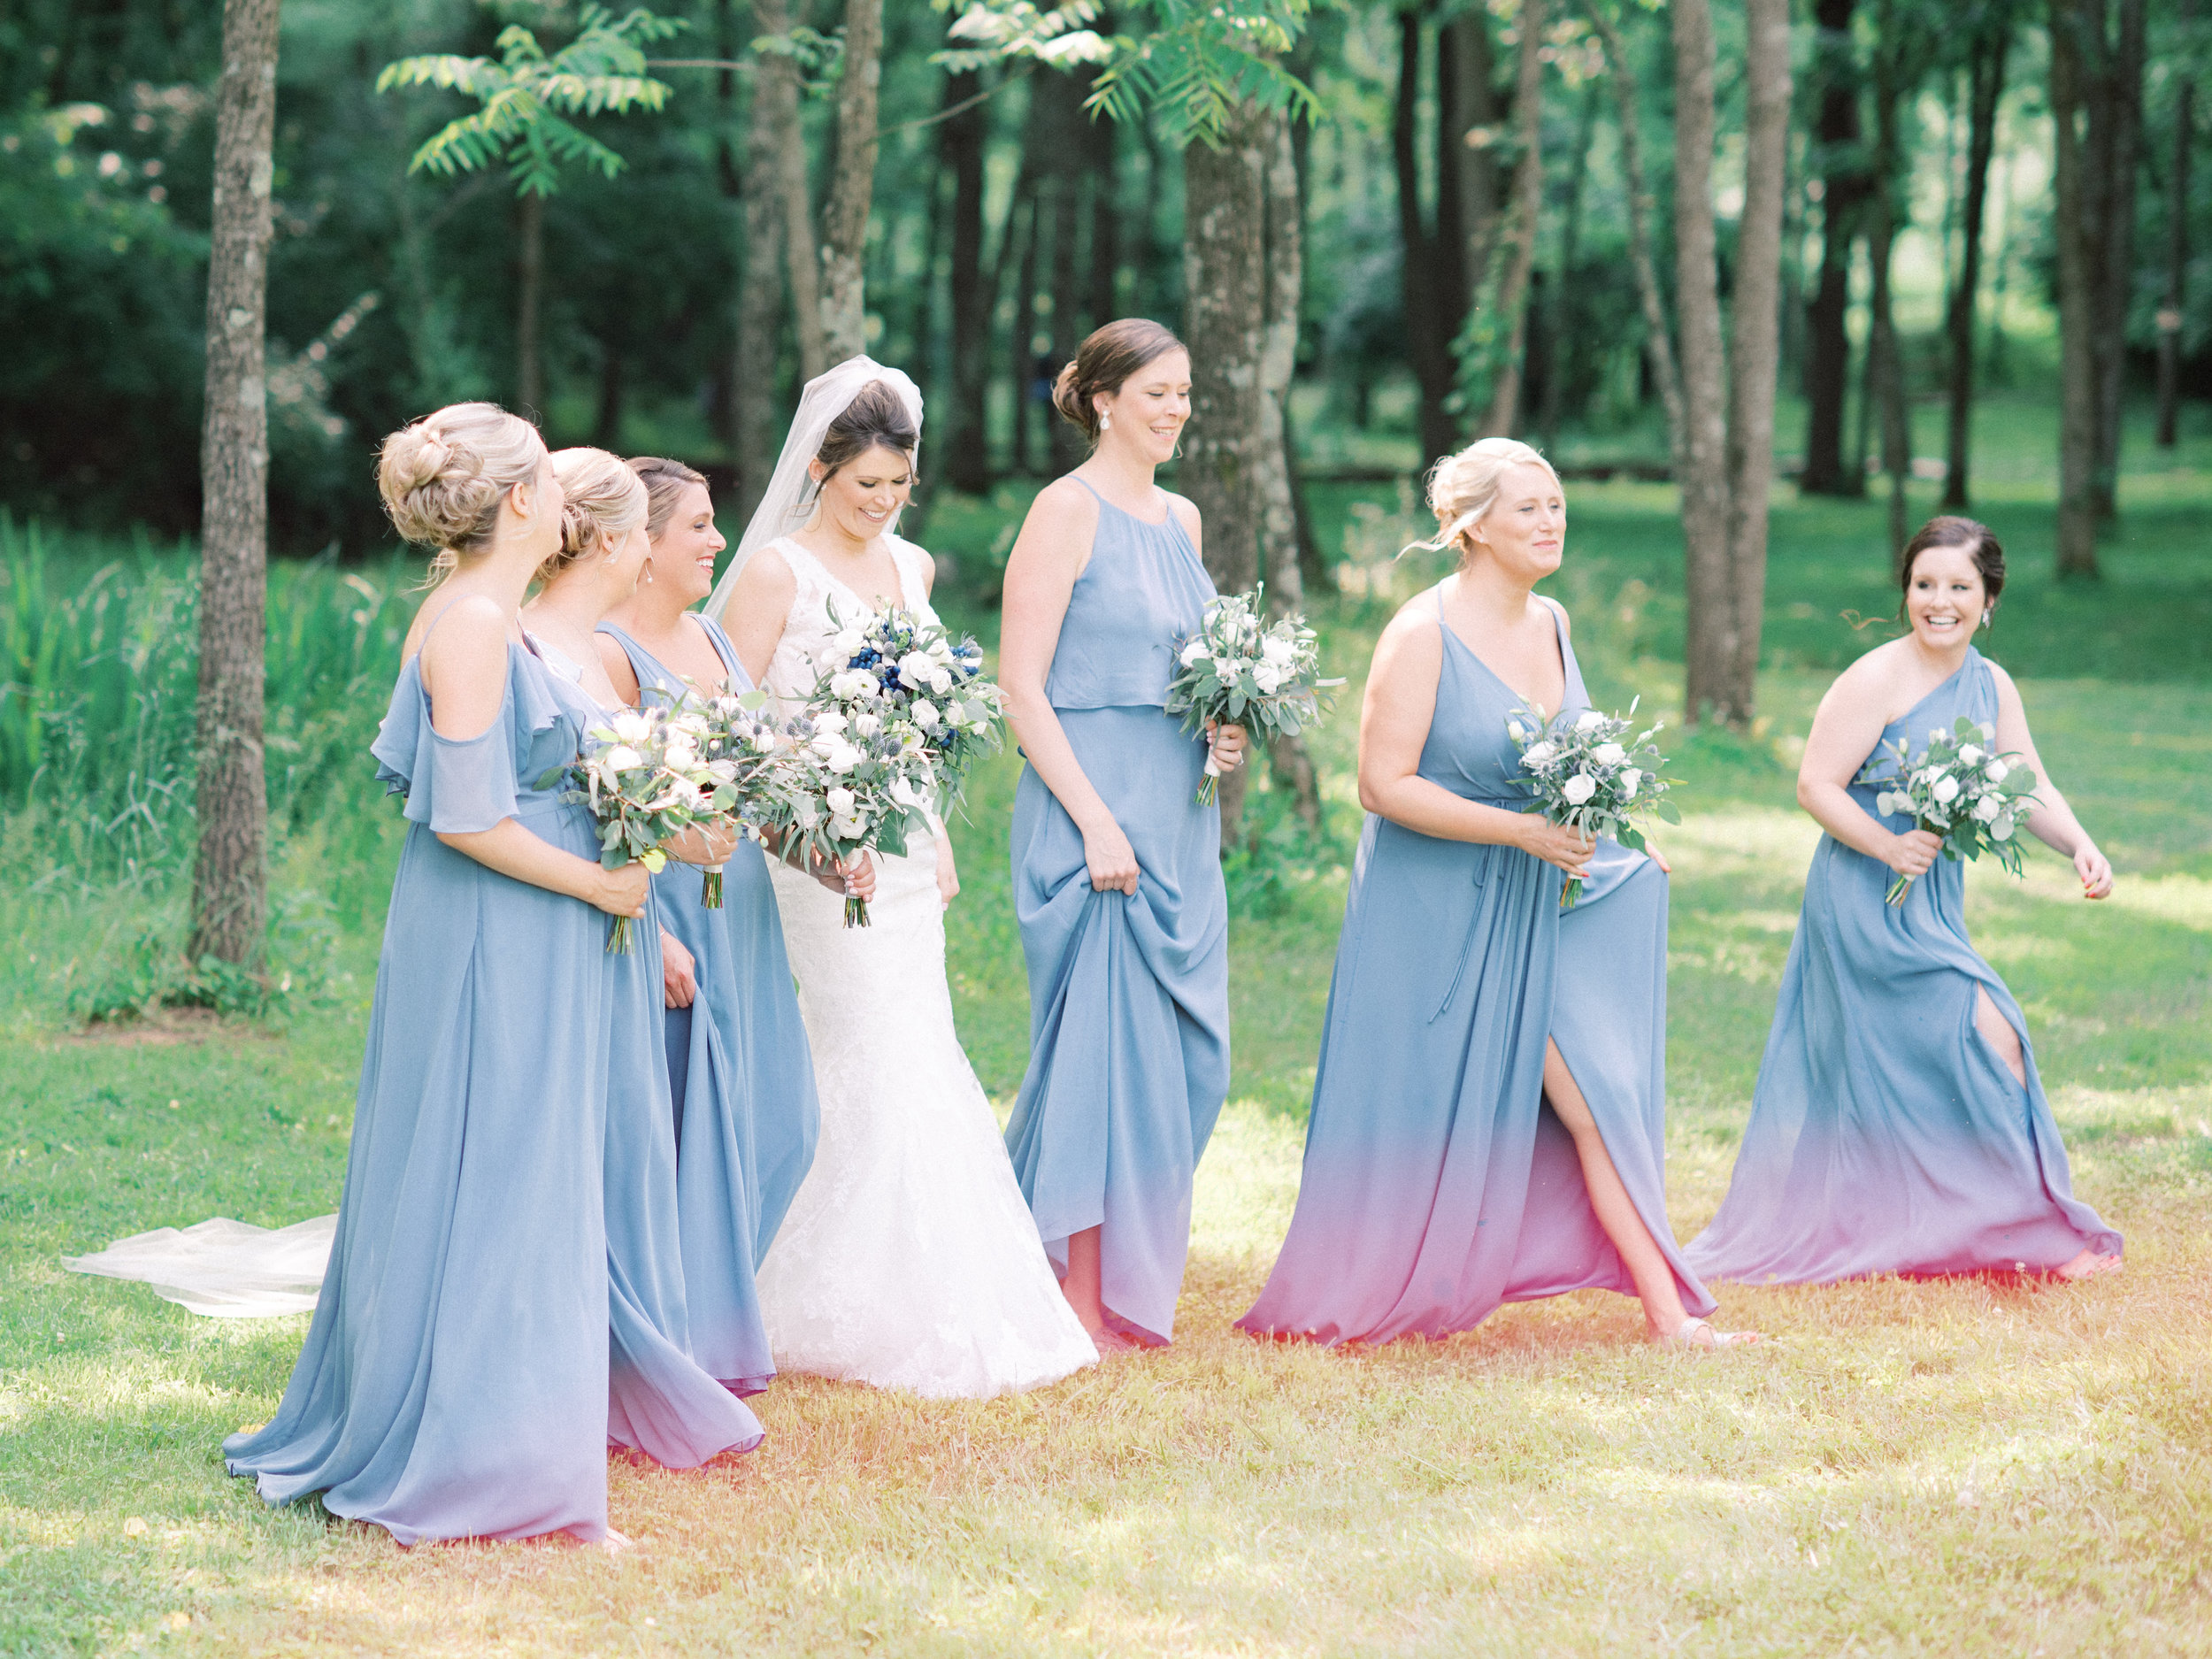 light-and-airy-wedding-photographer-lexington